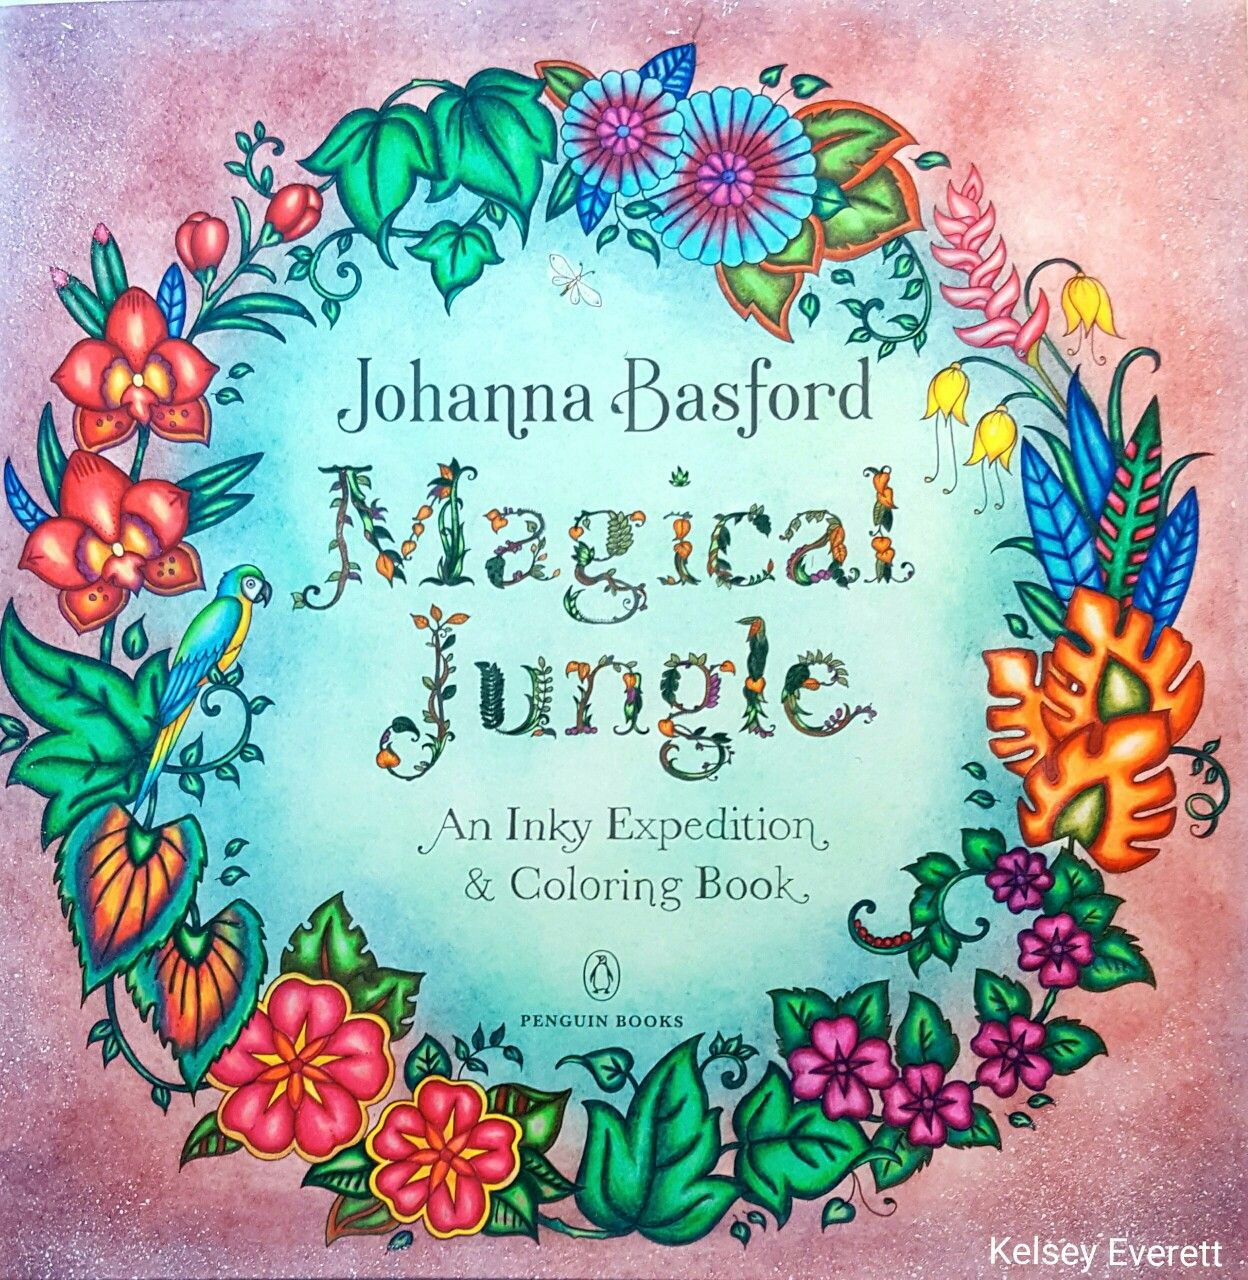 Johanna Basford S Magical Jungle Coloring Book Title Page Colored By Kelsey Everett Basford Coloring Coloring Books Johanna Basford Coloring